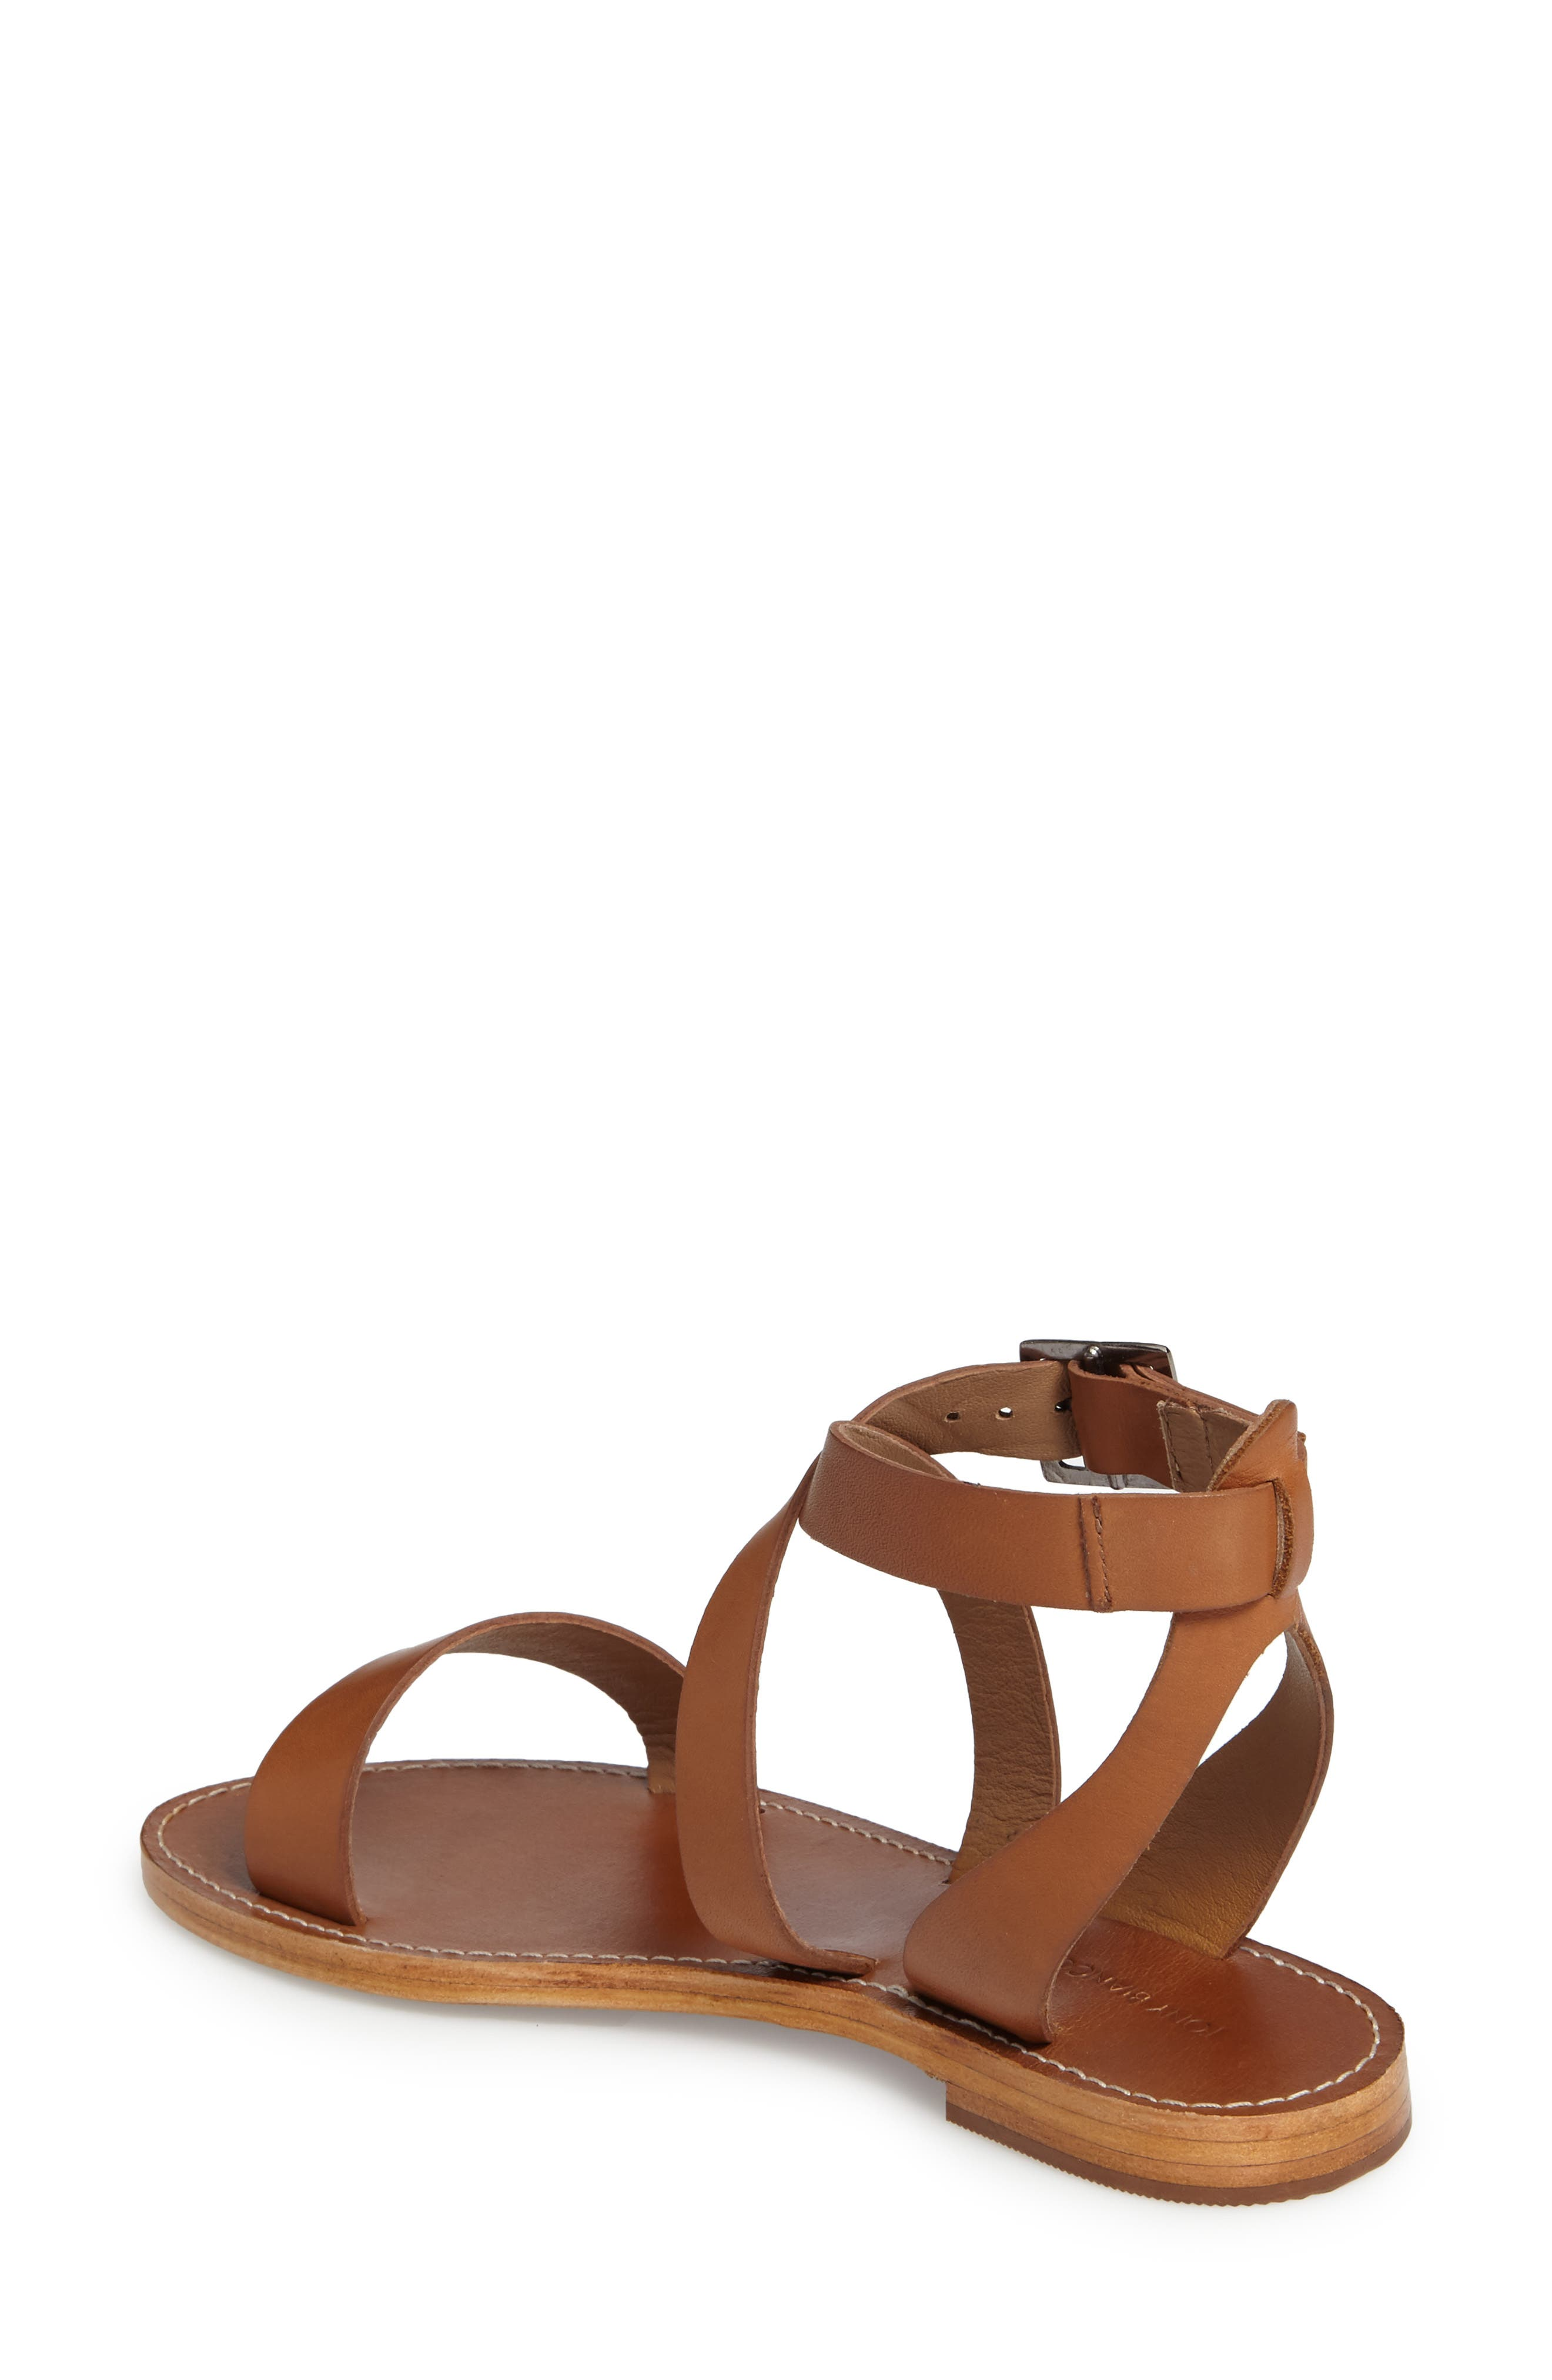 Alternate Image 2  - Tony Bianco Flo Ankle Strap Sandal (Women)